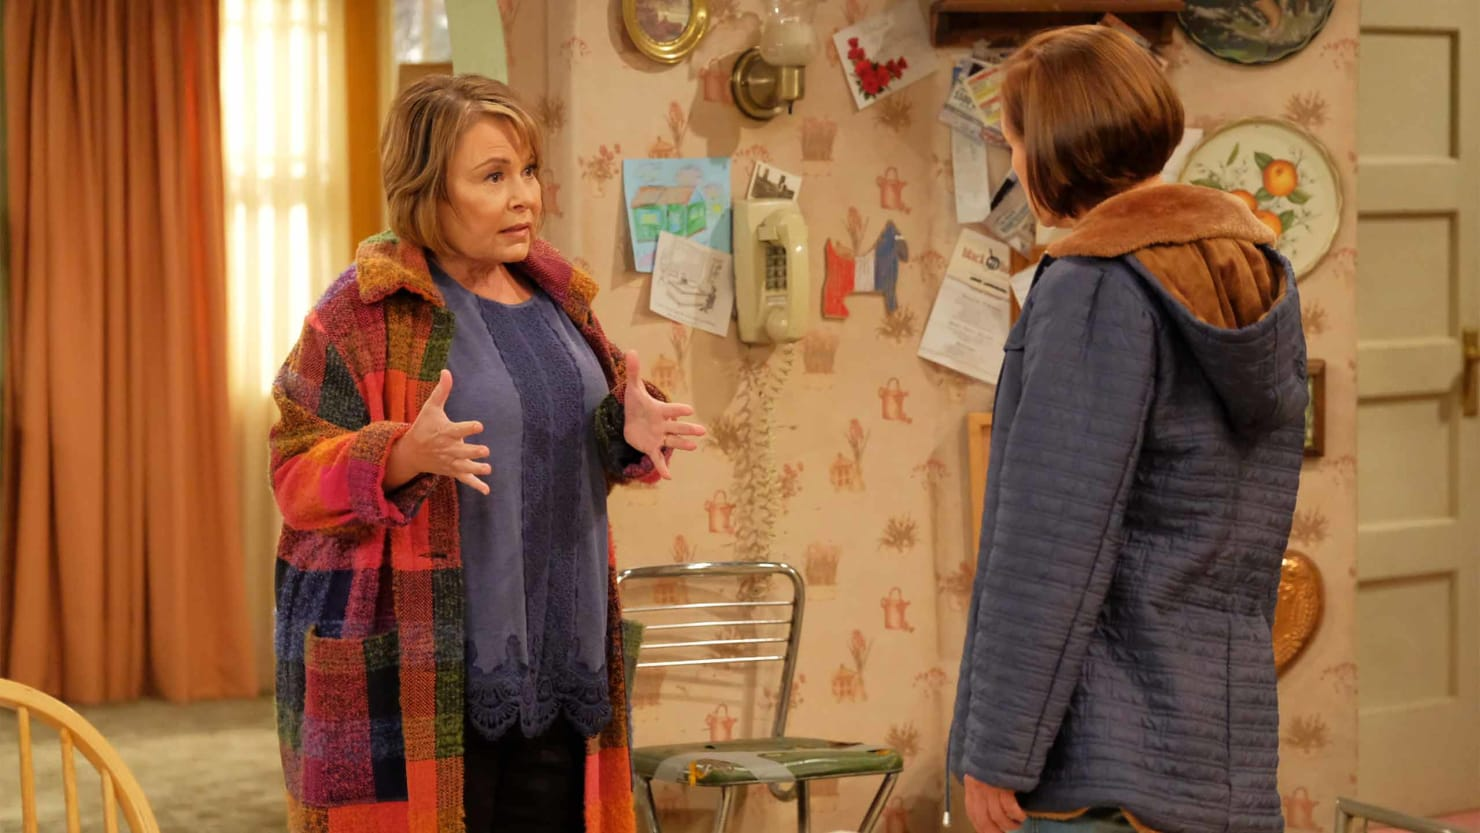 The 'Roseanne' Revival Aired Its Best Episode Yet. Will It Shut Up the Haters?